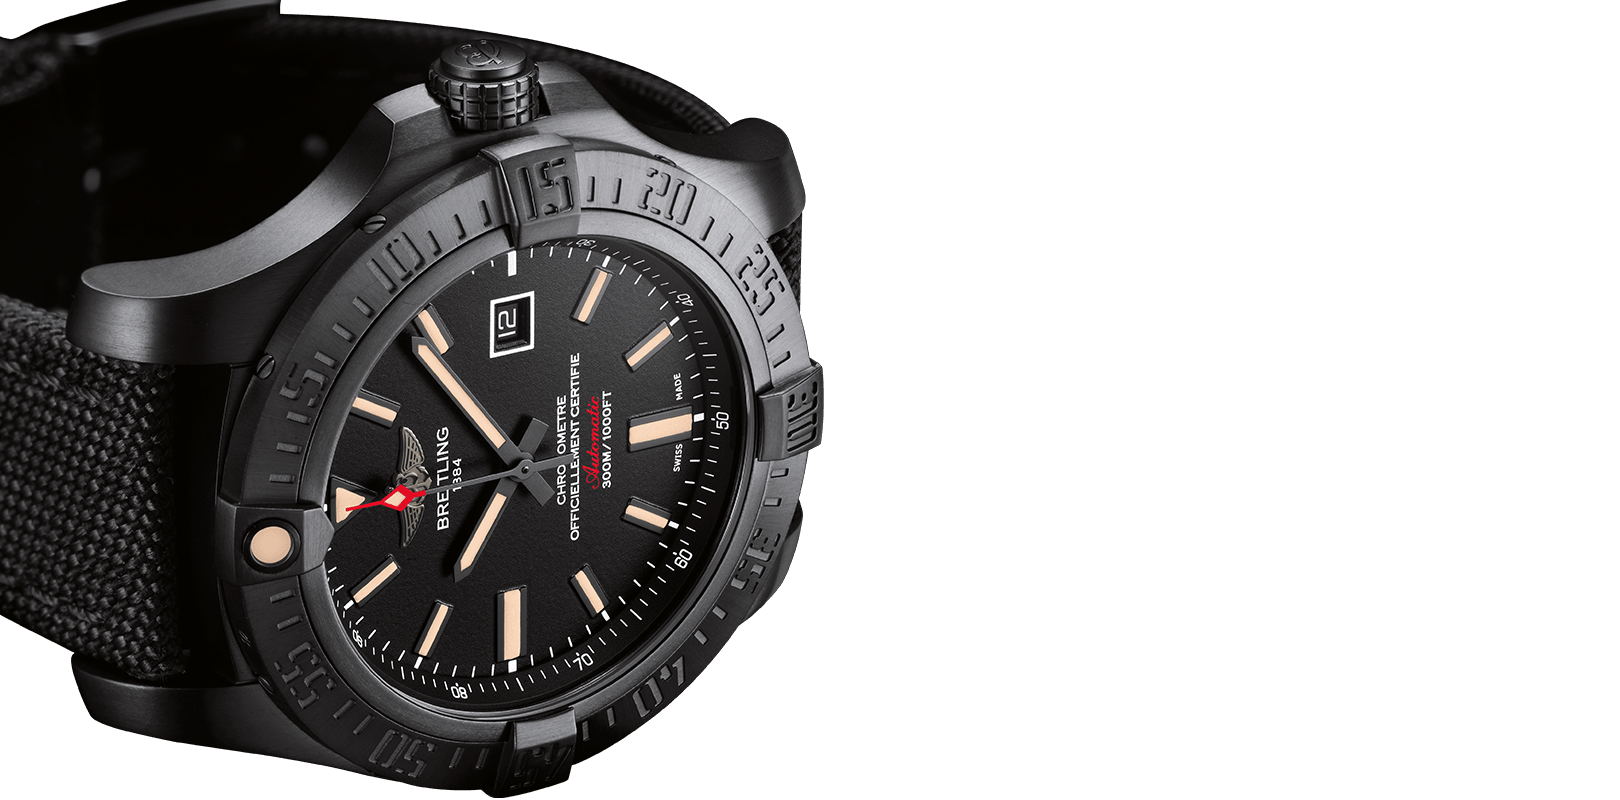 Citizen Nh6750-51eb